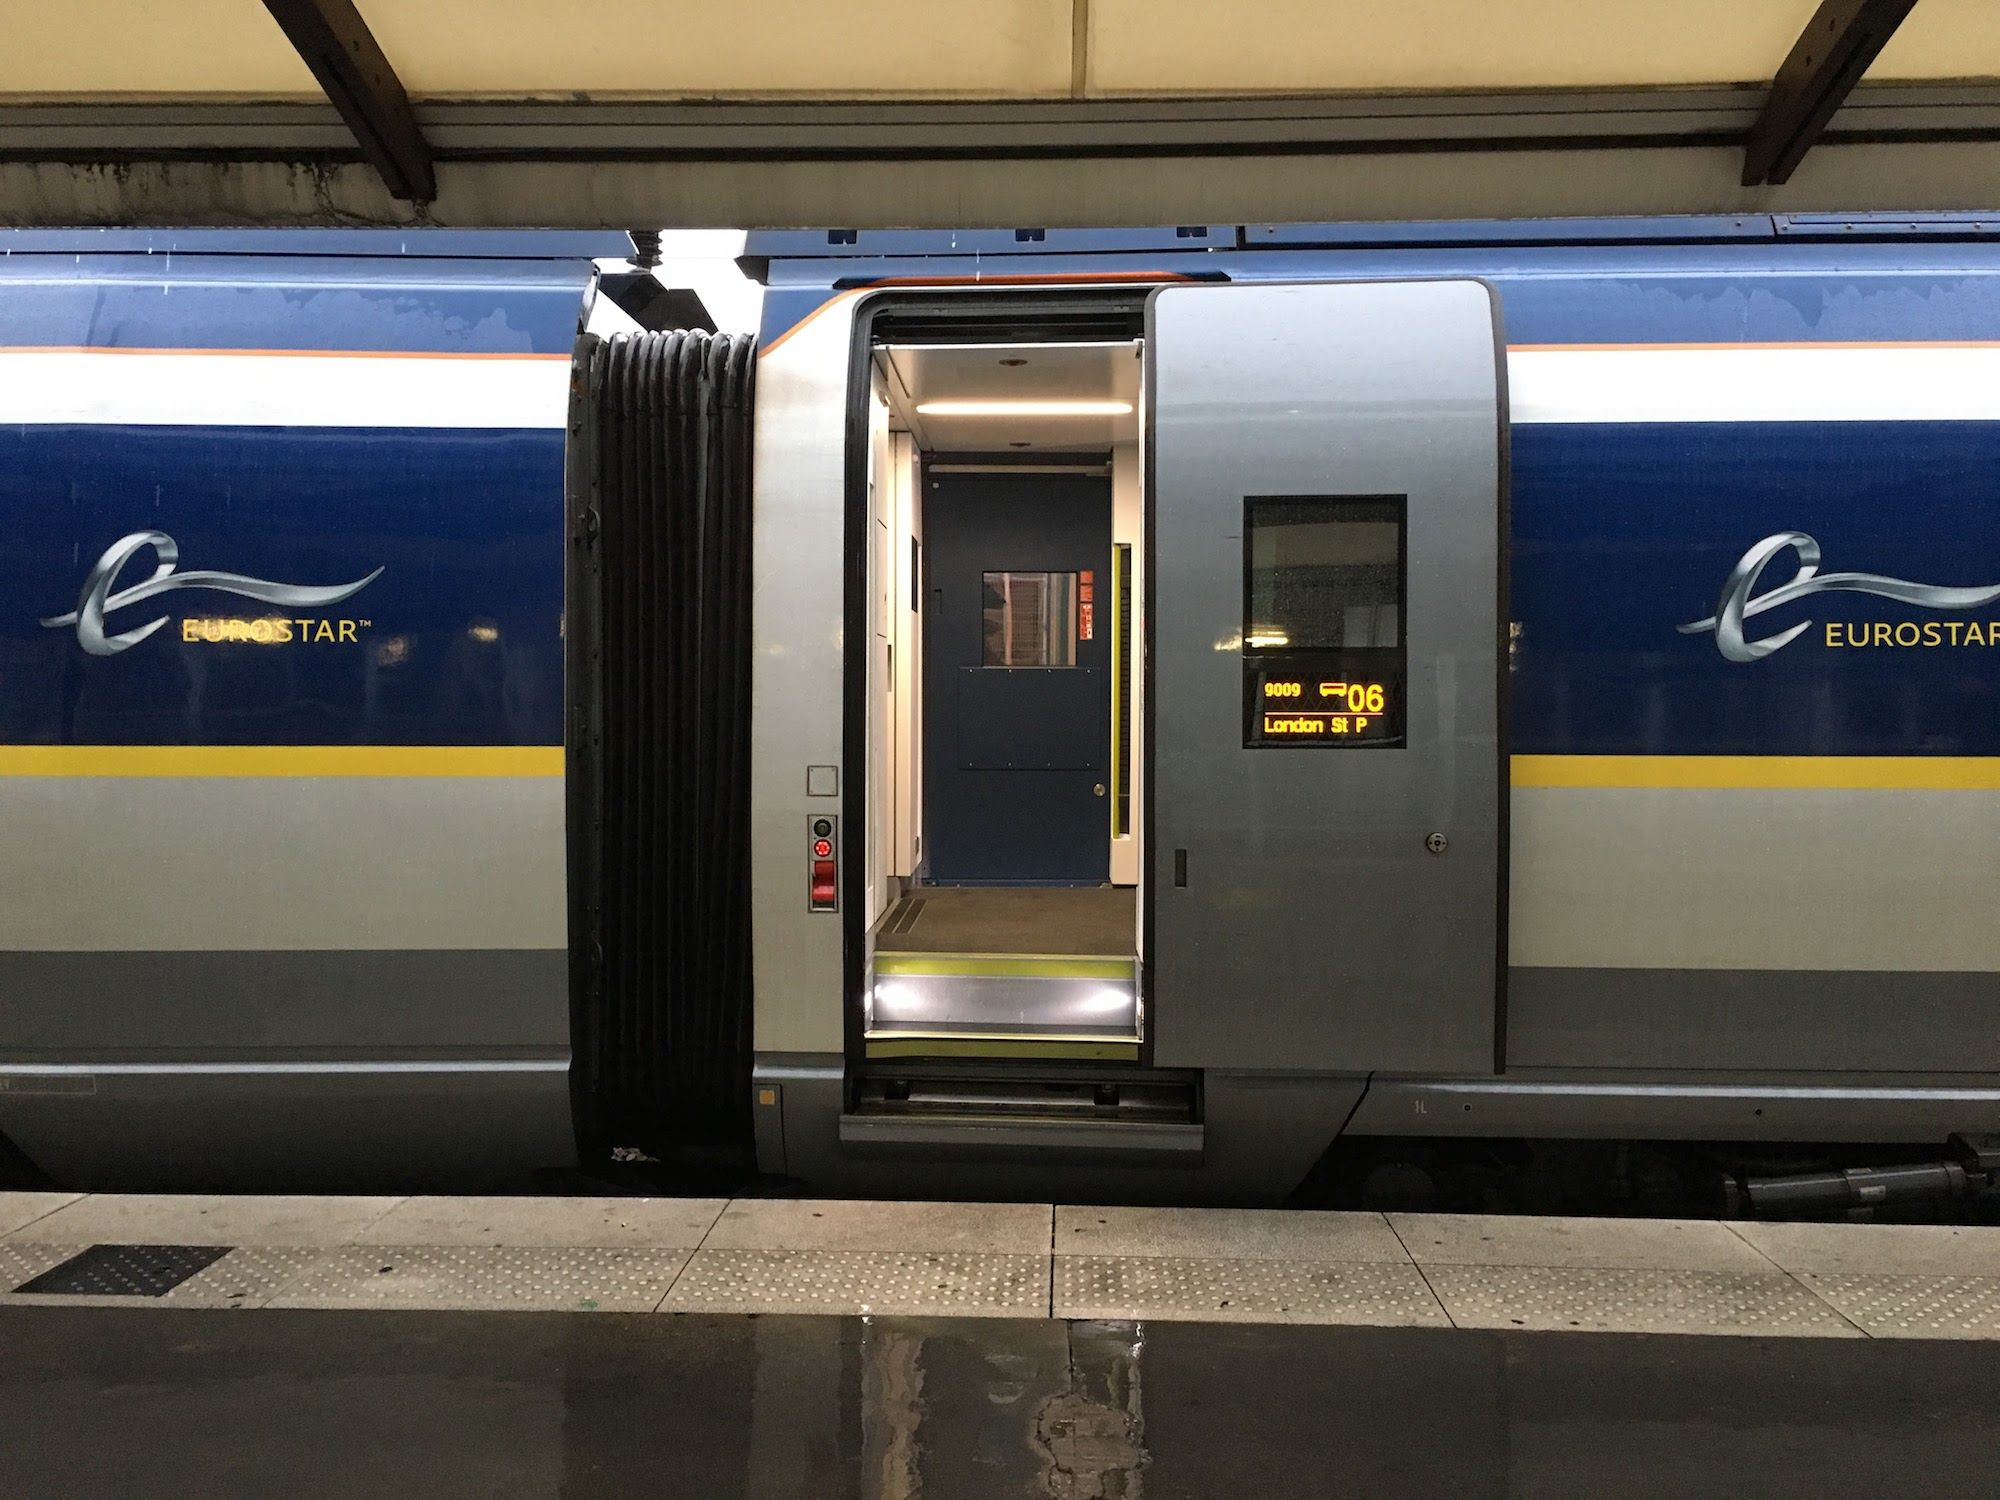 How Long Does The Eurostar Take To Get To Paris